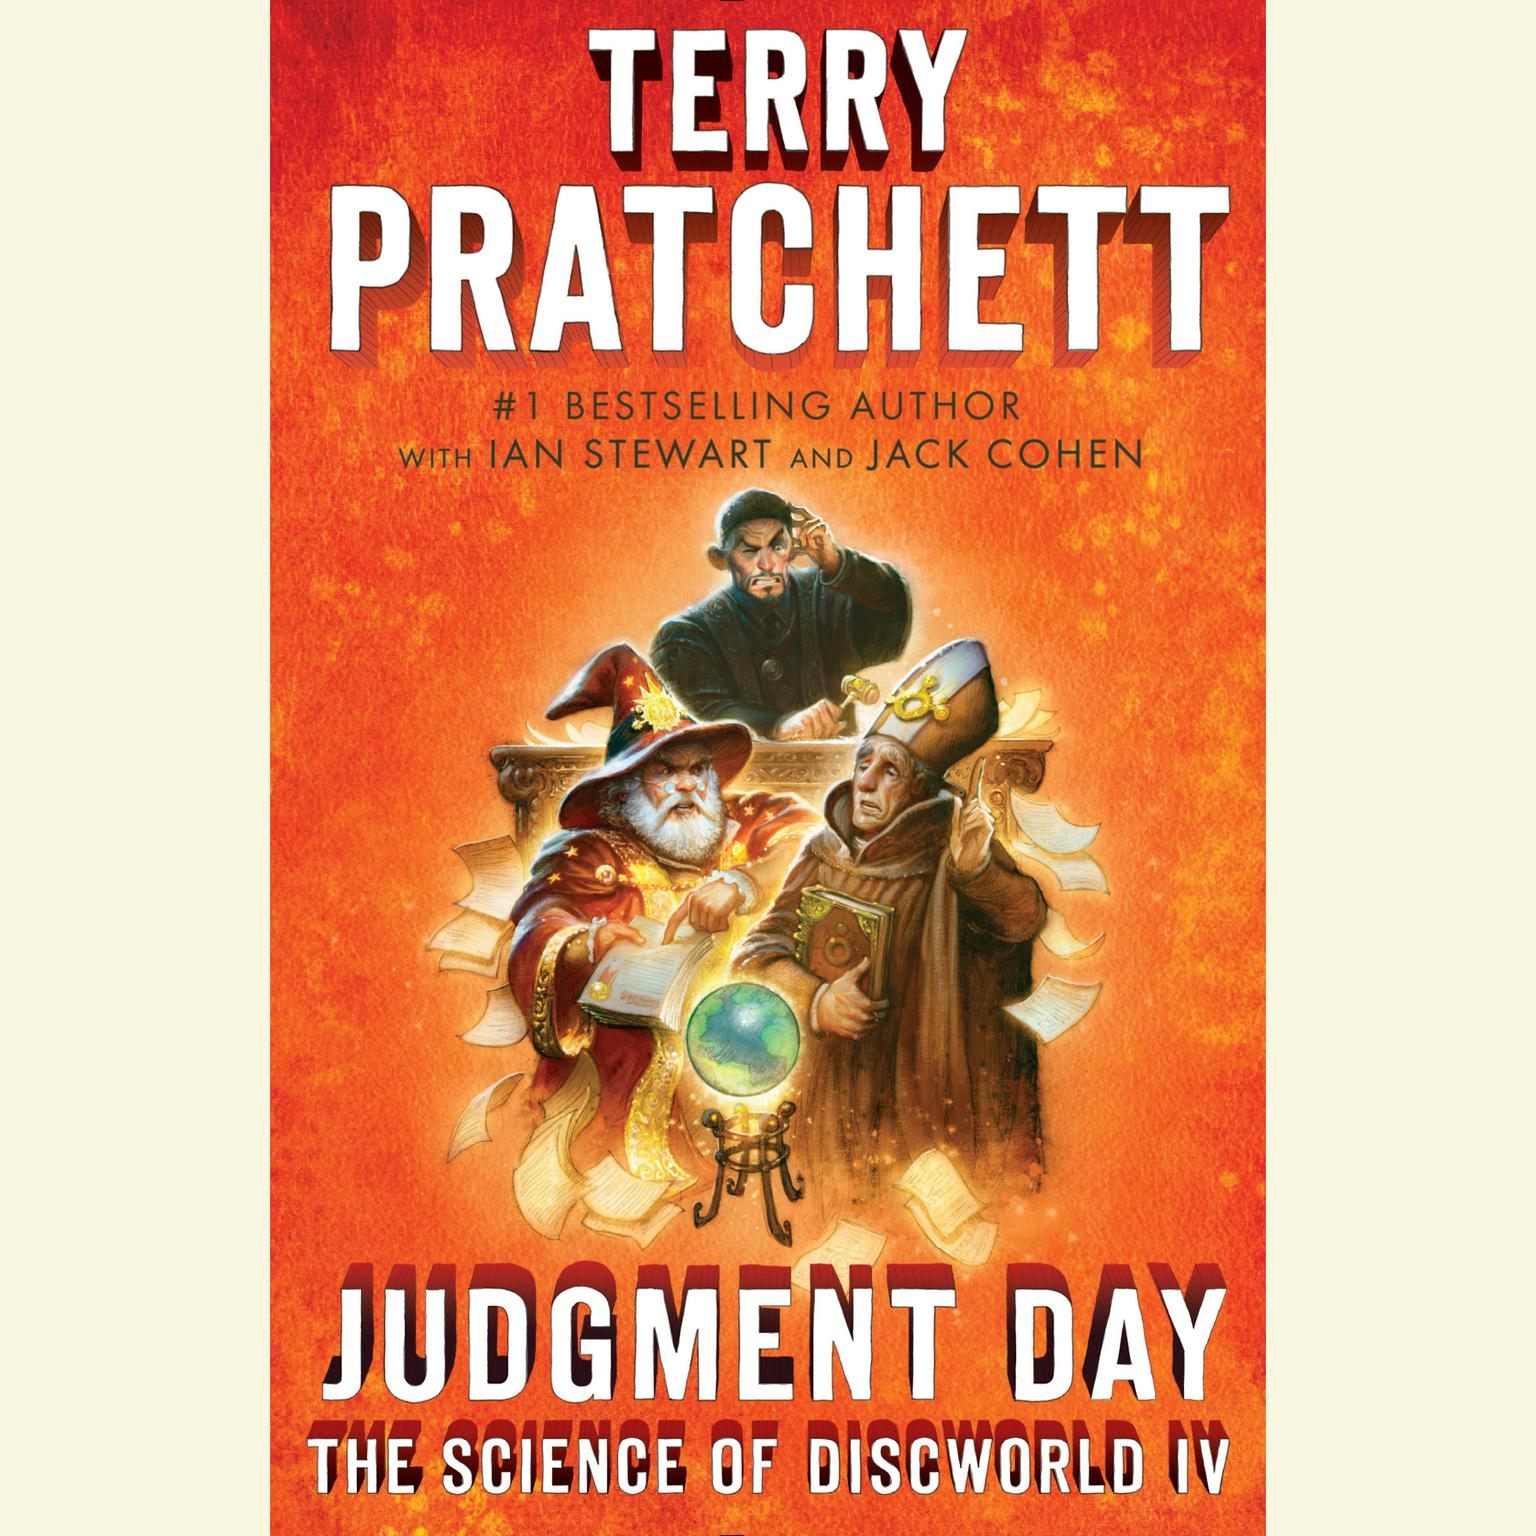 Printable Judgment Day: Science of Discworld IV: A Novel Audiobook Cover Art